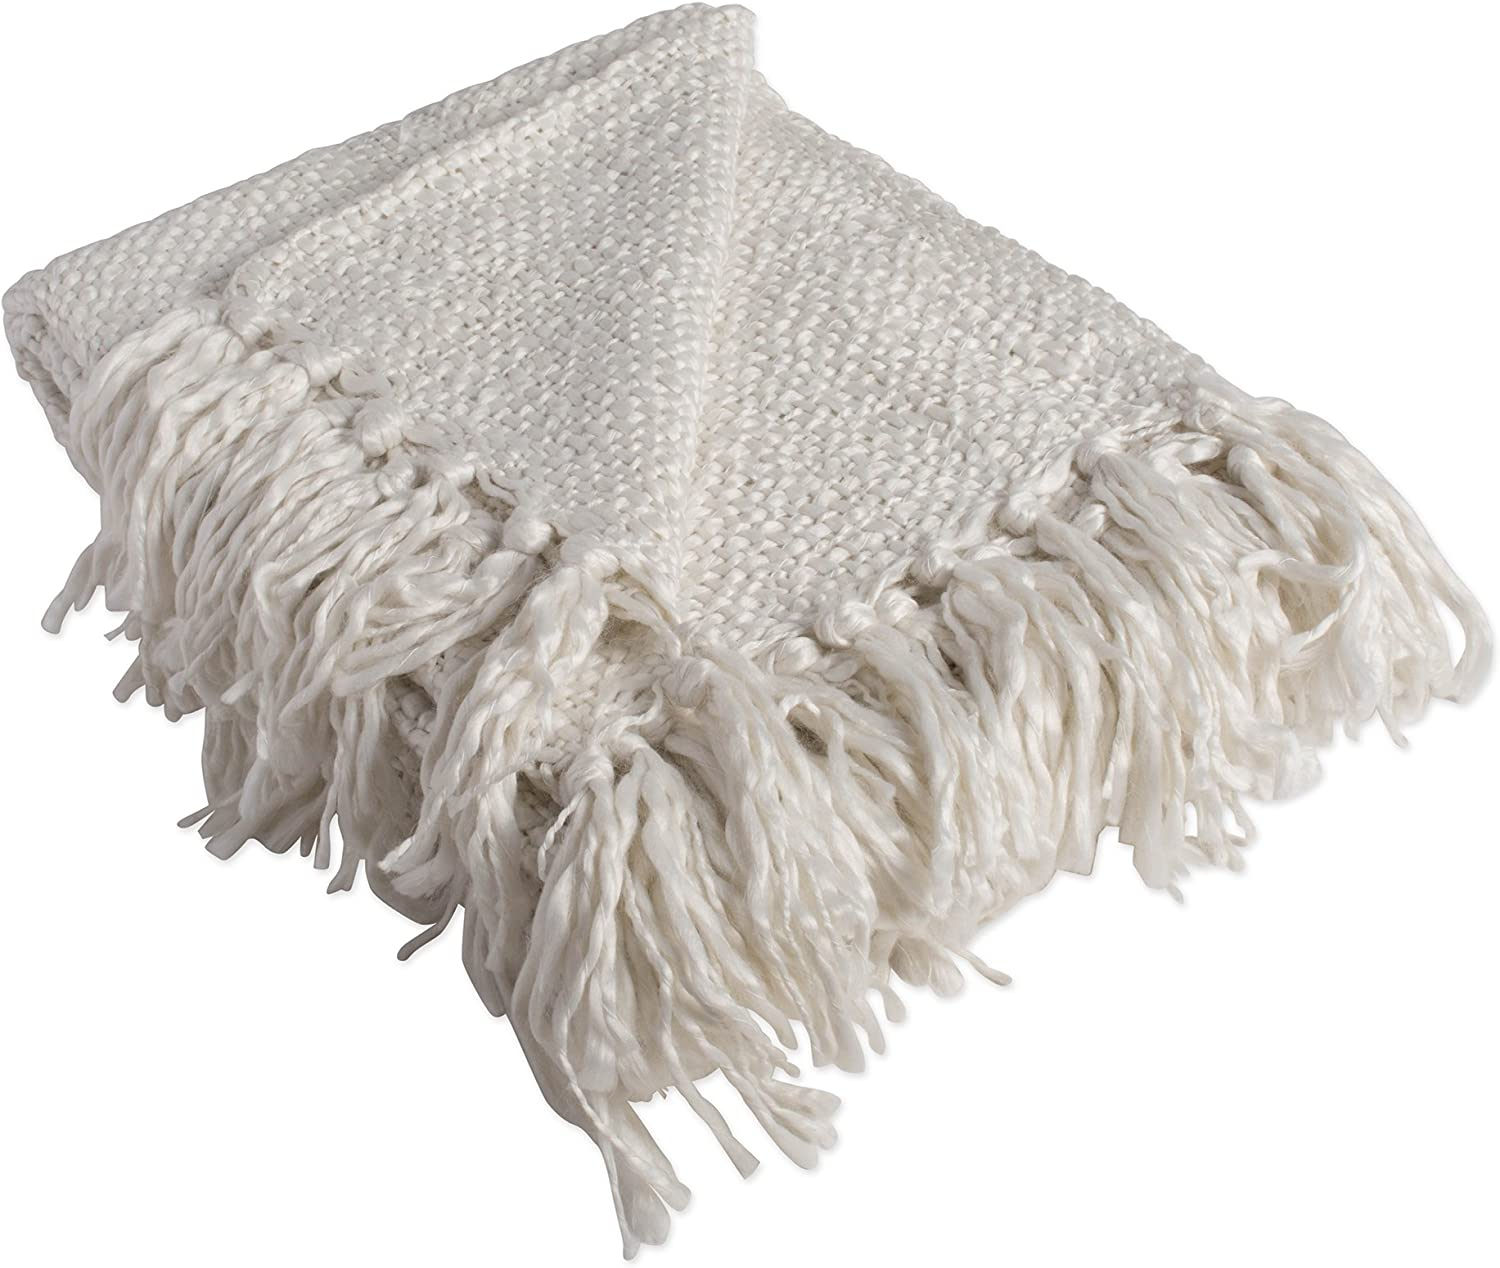 DII Luxury Woven Throw Blanket with Fringe, 50x60, Ivory